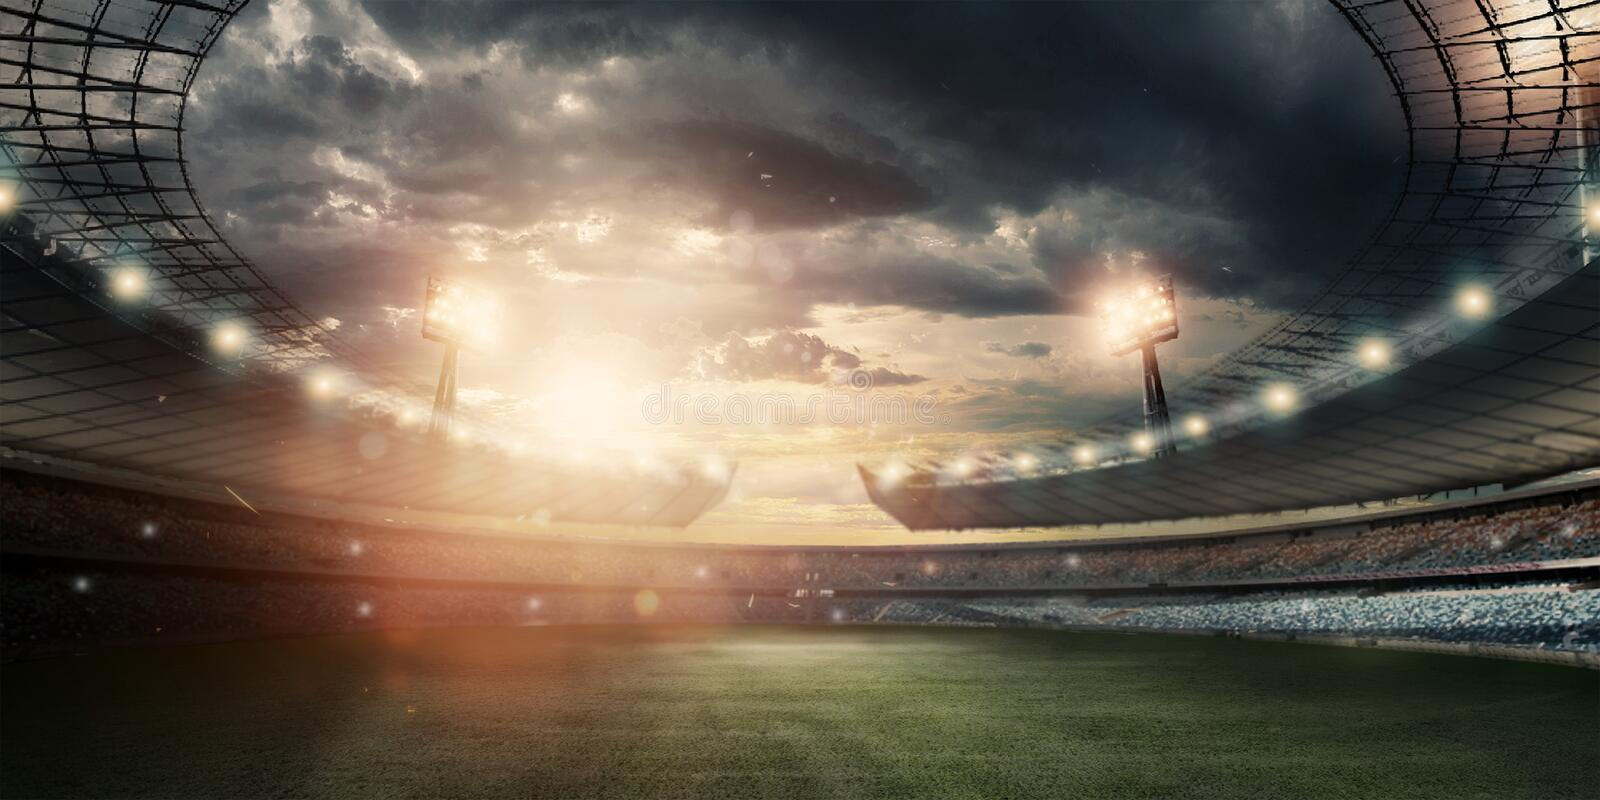 Stadium in the lights and flashes, football field. Concept sports background, football, night stadium. Mixed media, copy space.  stock illustration